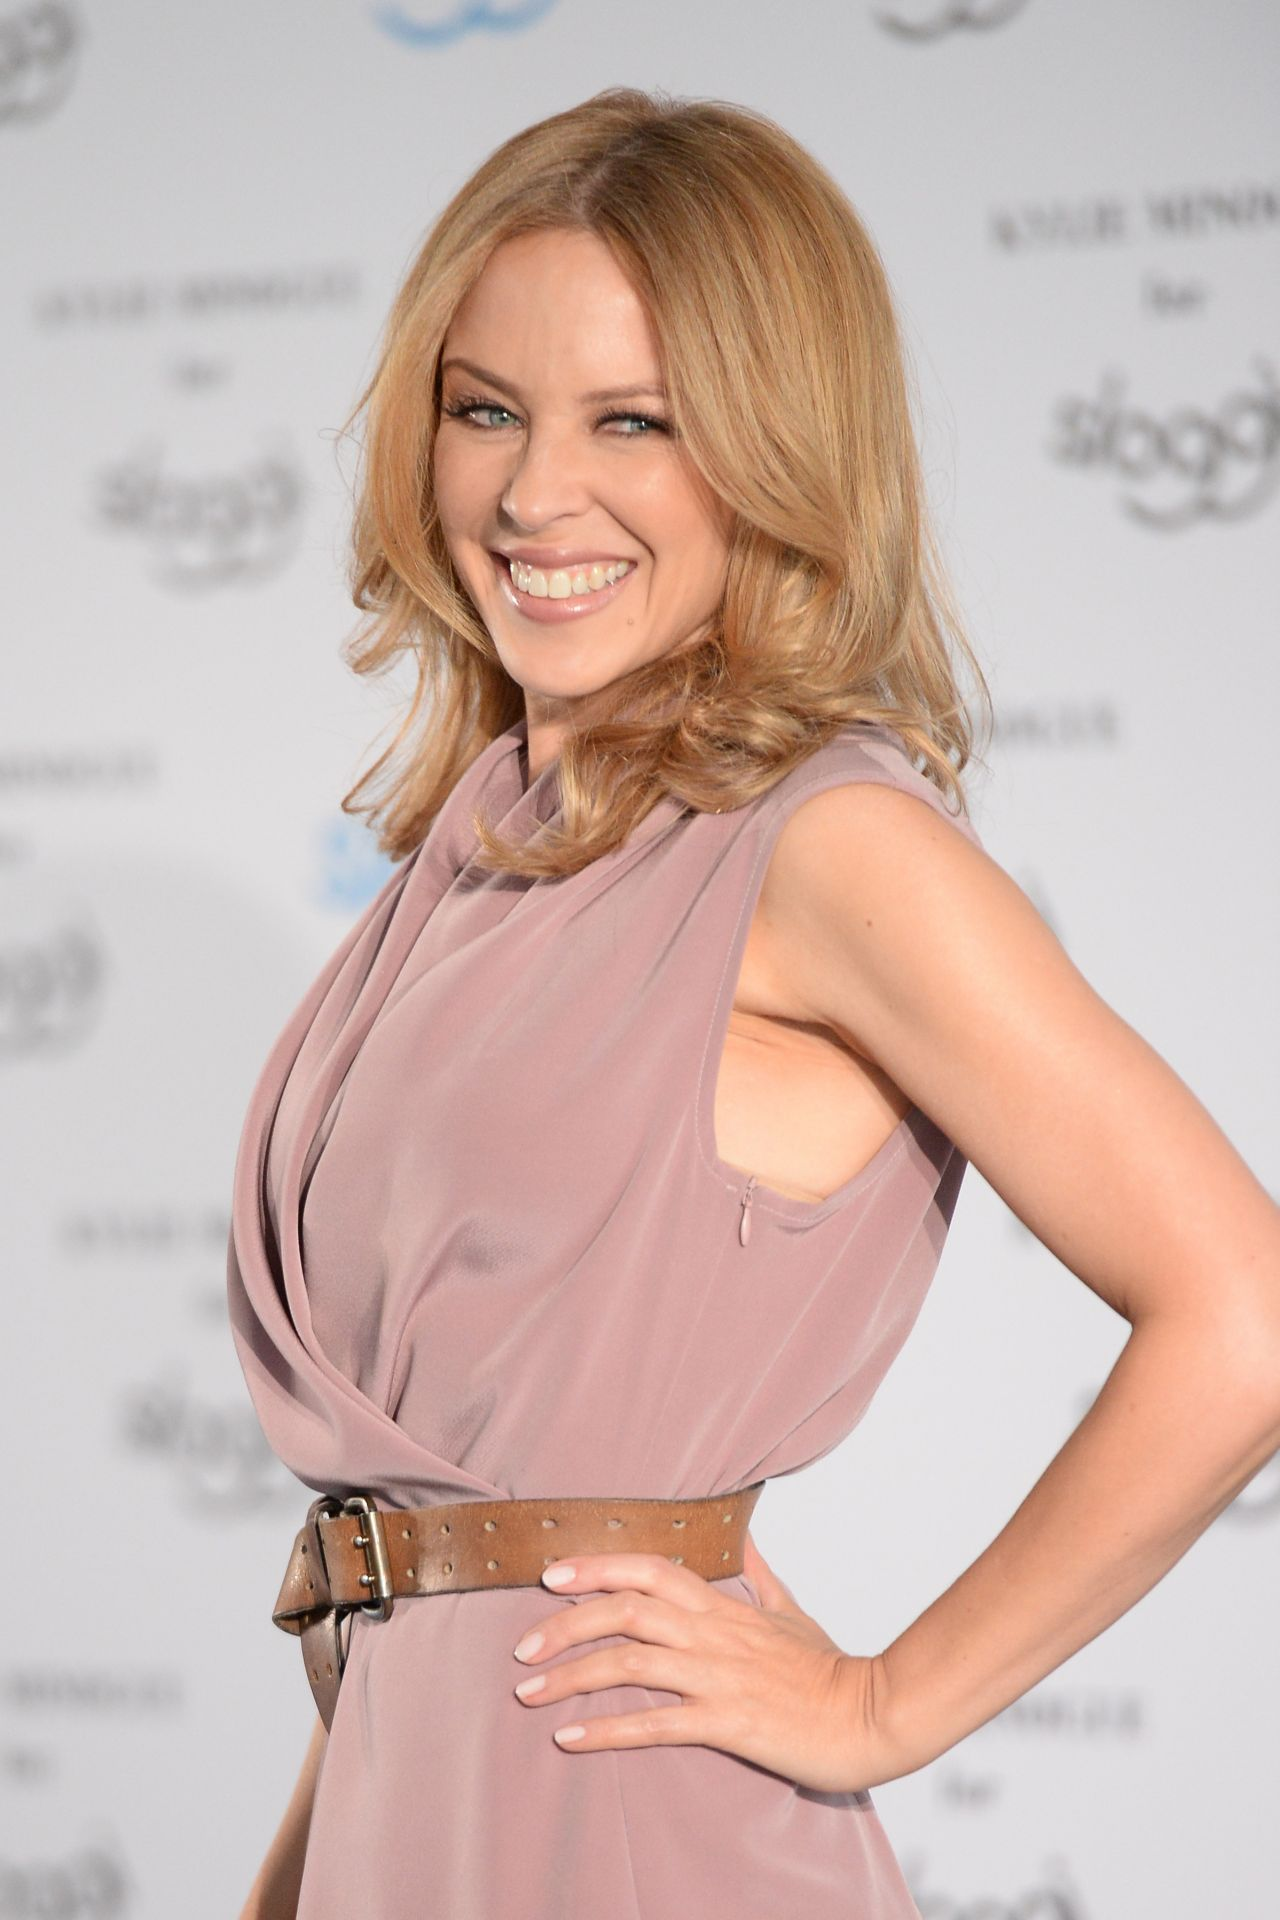 Kylie minogue lingerie videos